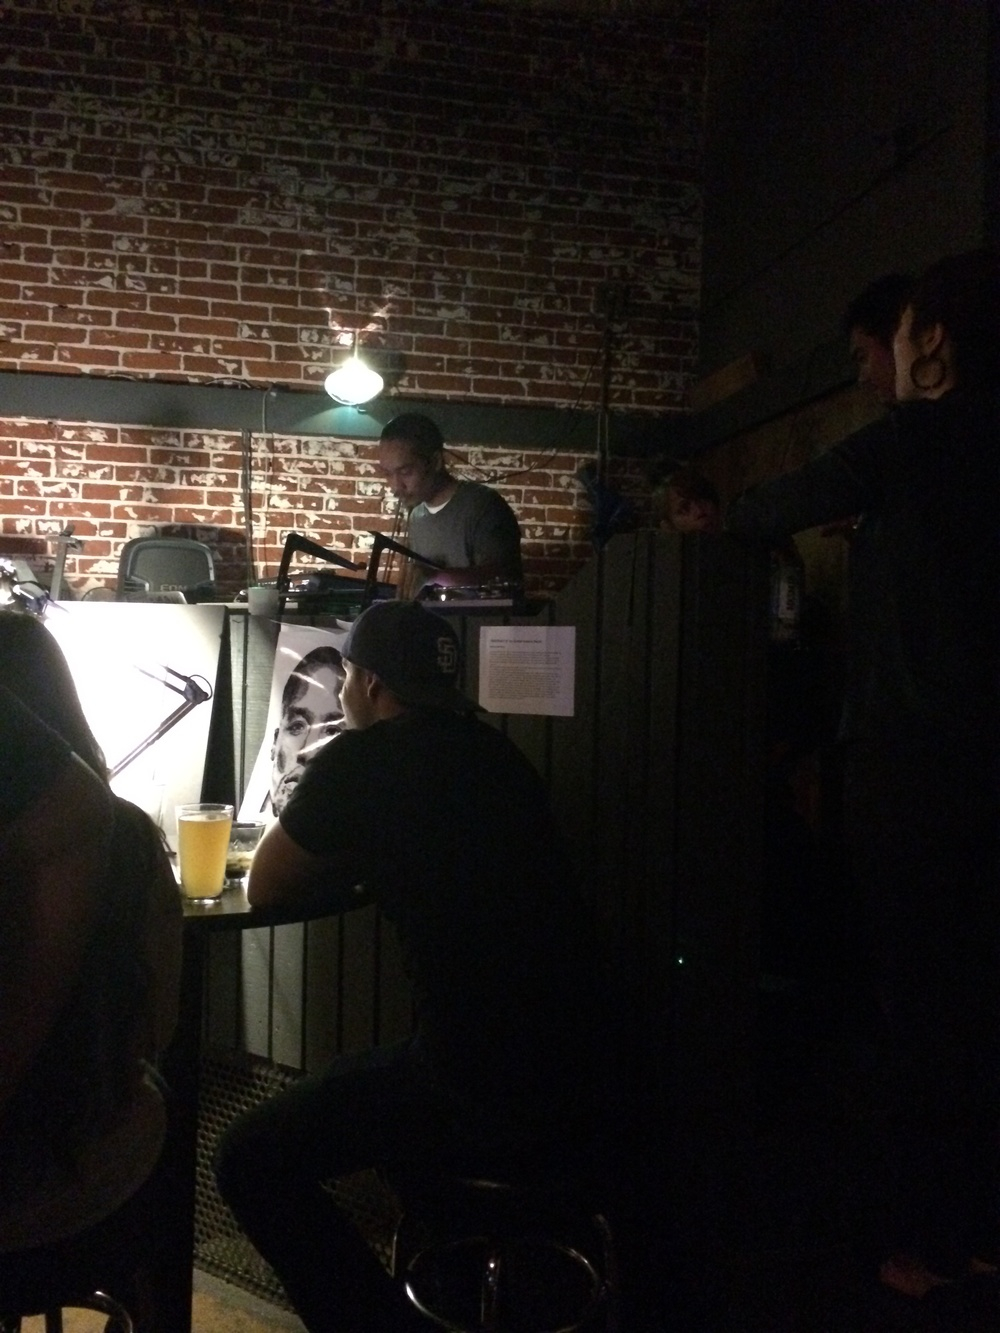 The DJ is spinning dope hip hop just above a lady creating a picture of Tupac Shakur.